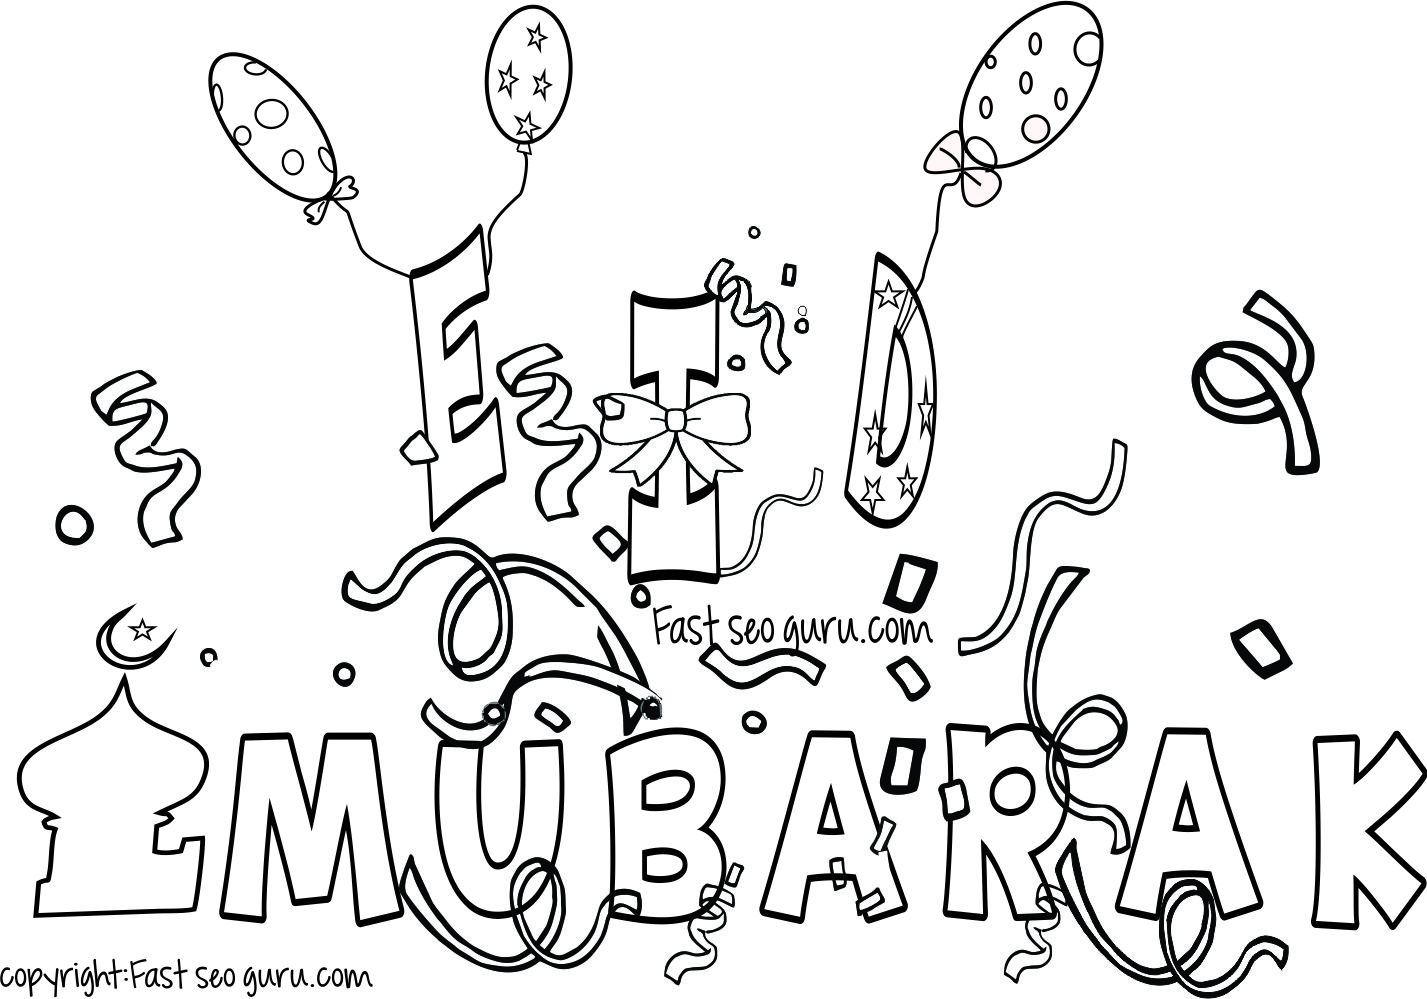 Eid Mubarak Coloring Pages For Kids With Images